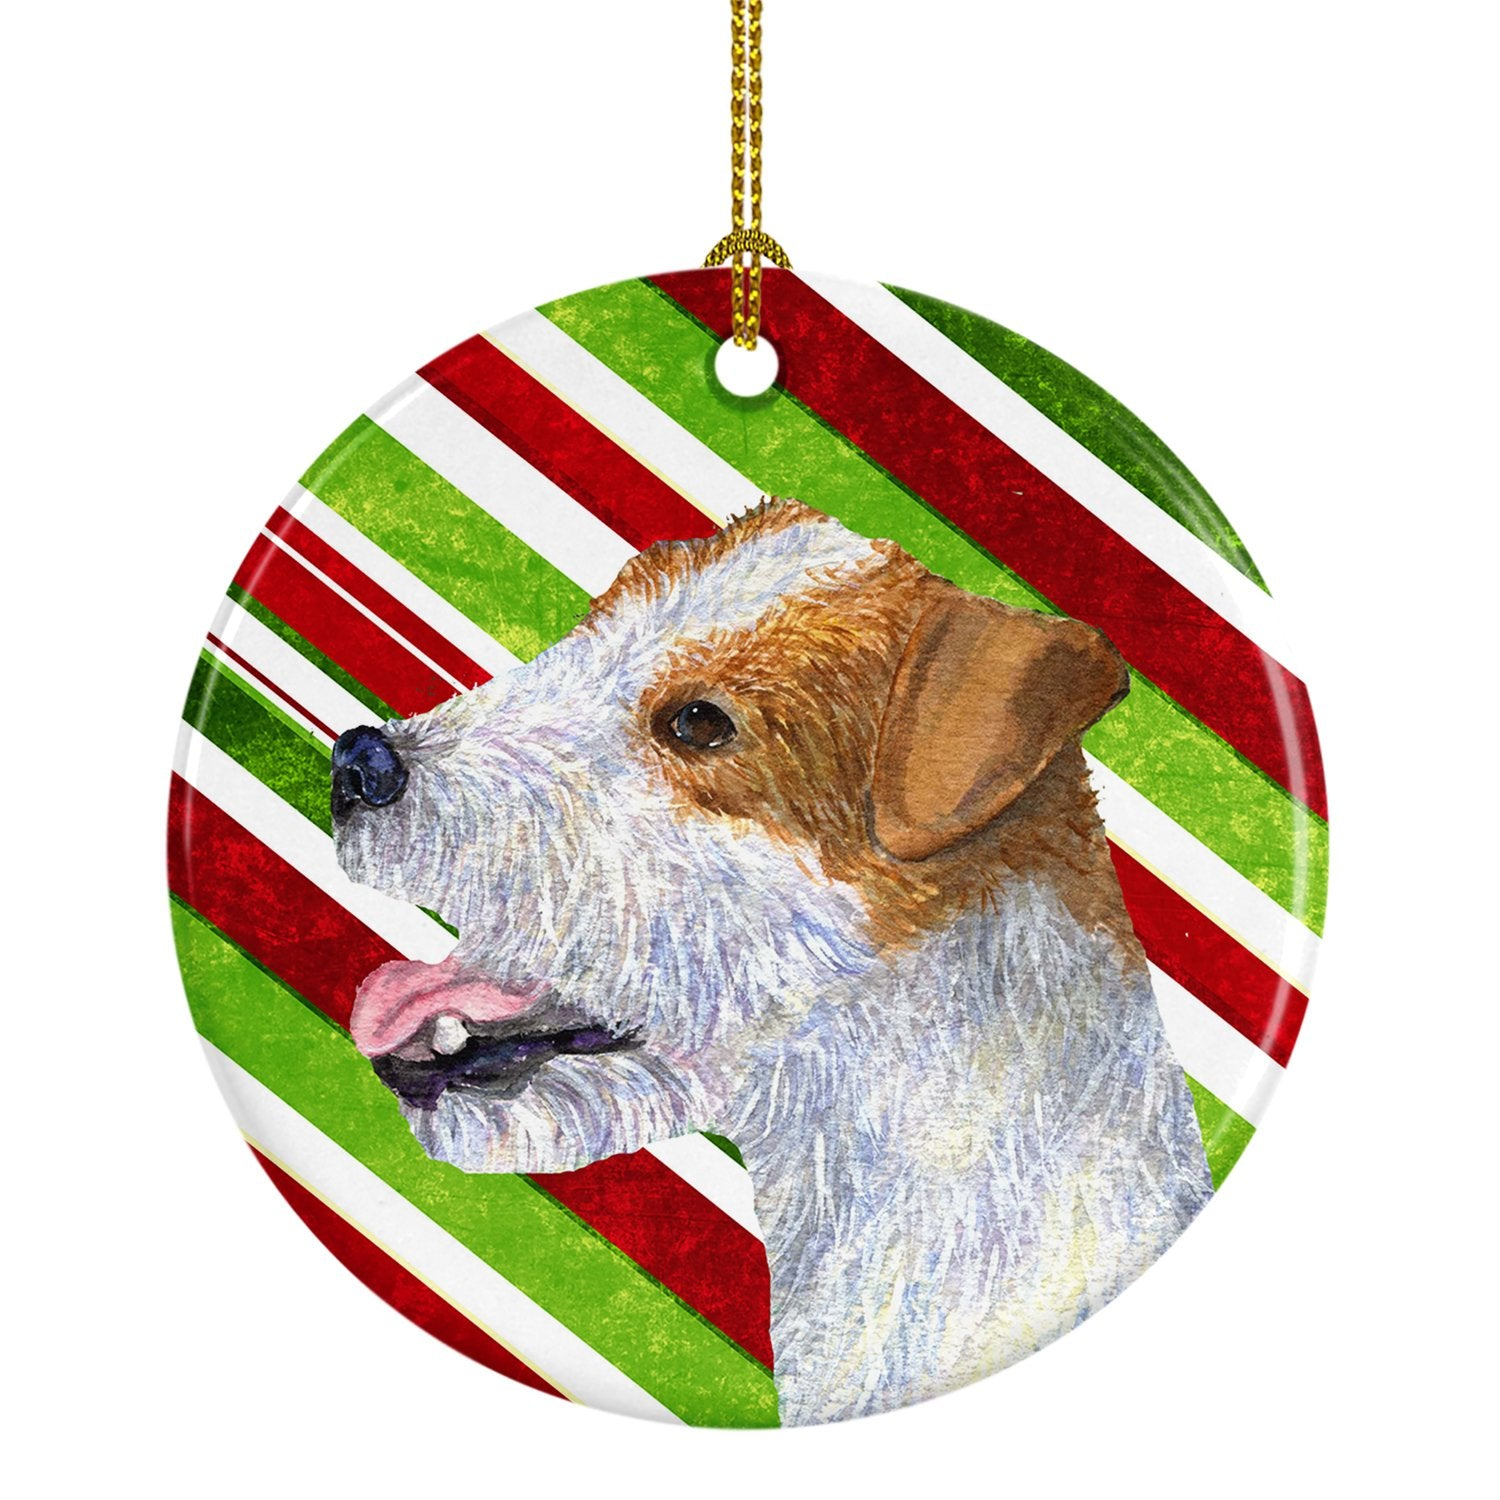 Jack Russell Terrier Candy Cane Holiday Christmas Ceramic Ornament SS4573 by Caroline's Treasures